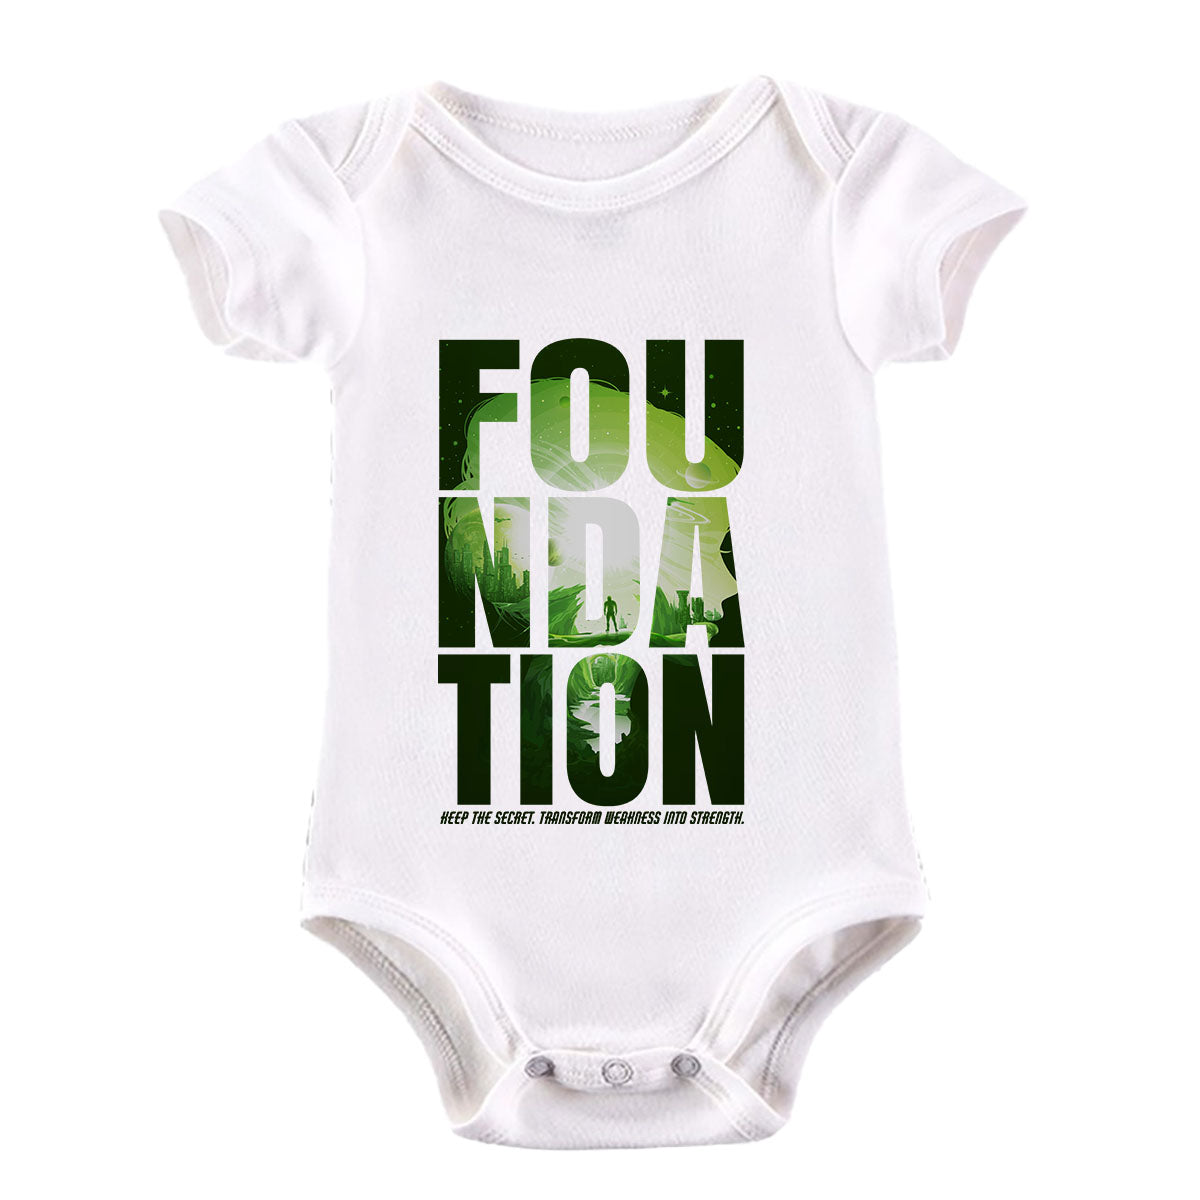 Isaac Asimov T-Shirt Foundation Empire Robot Android Science Fiction White Baby & Toddler Body Suit